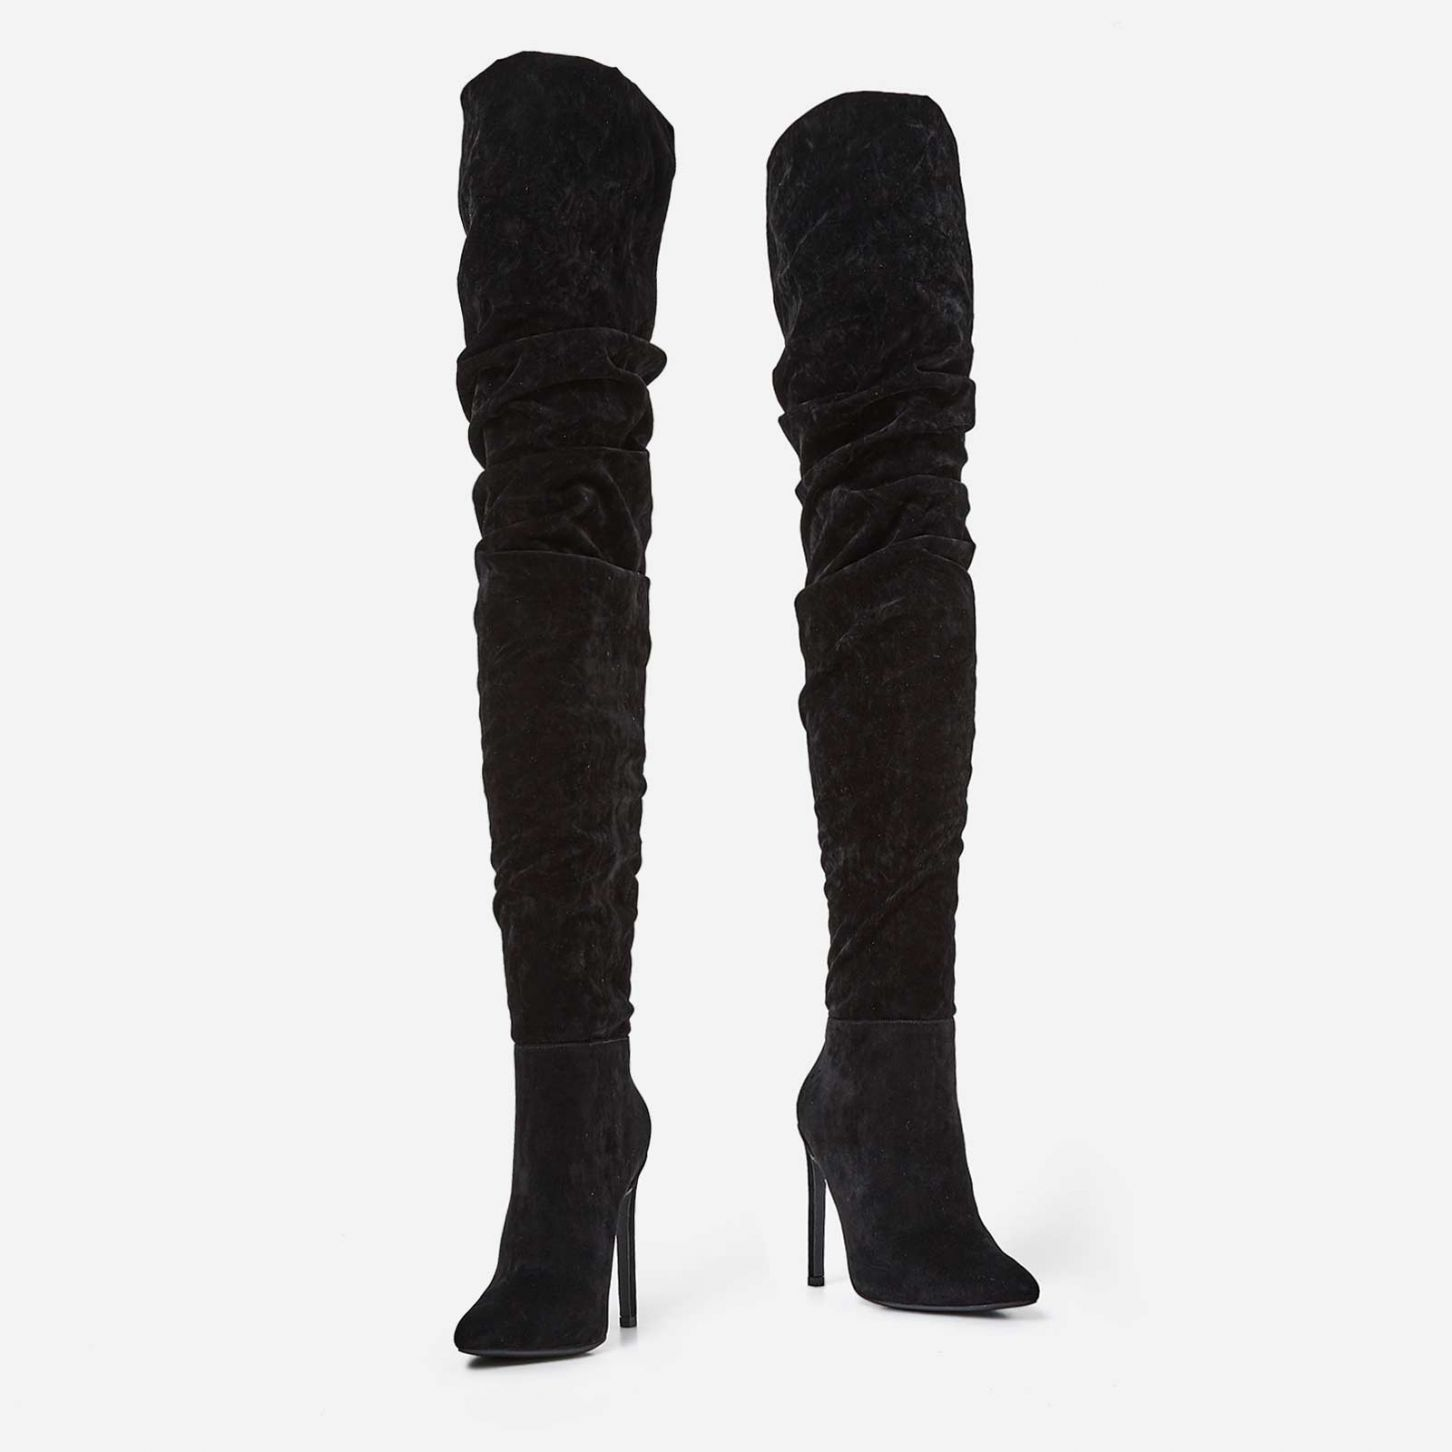 EGO BLACK SLOUCH OVER THE KNEE BOOTS